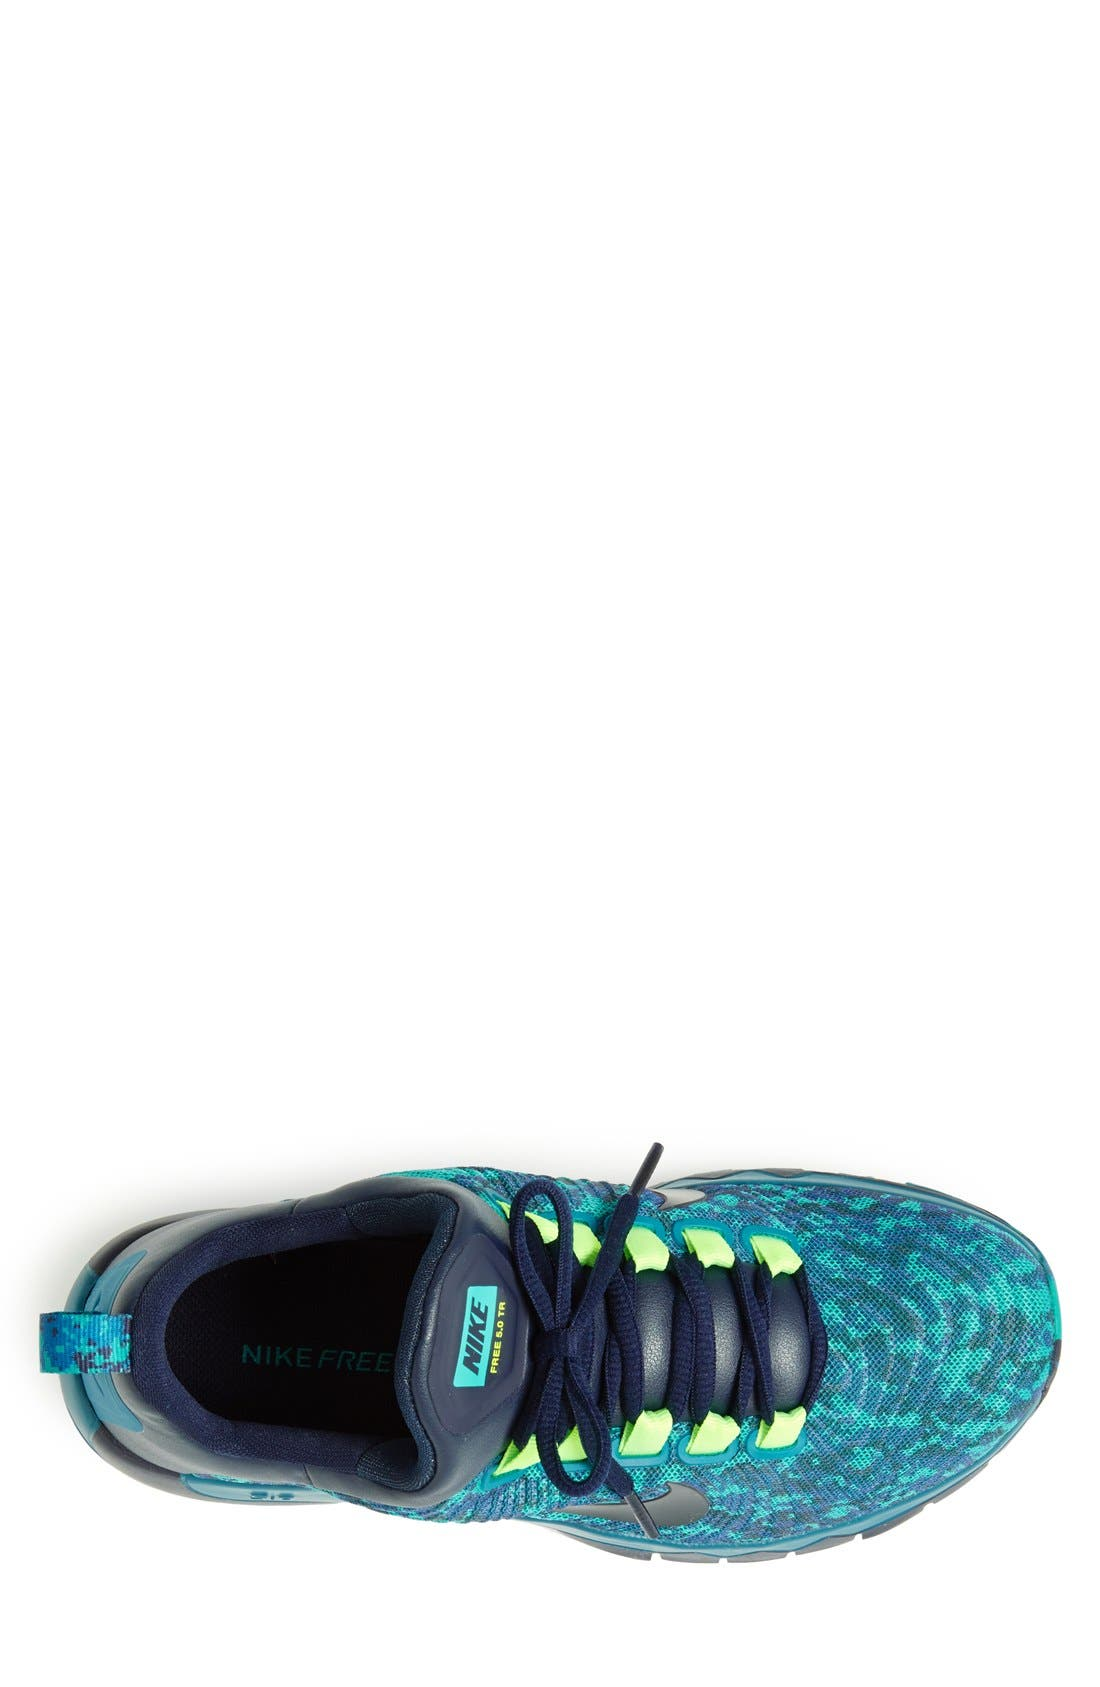 Alternate Image 3  - Nike 'Free Trainer 5.0 NRG' Training Shoe (Men)